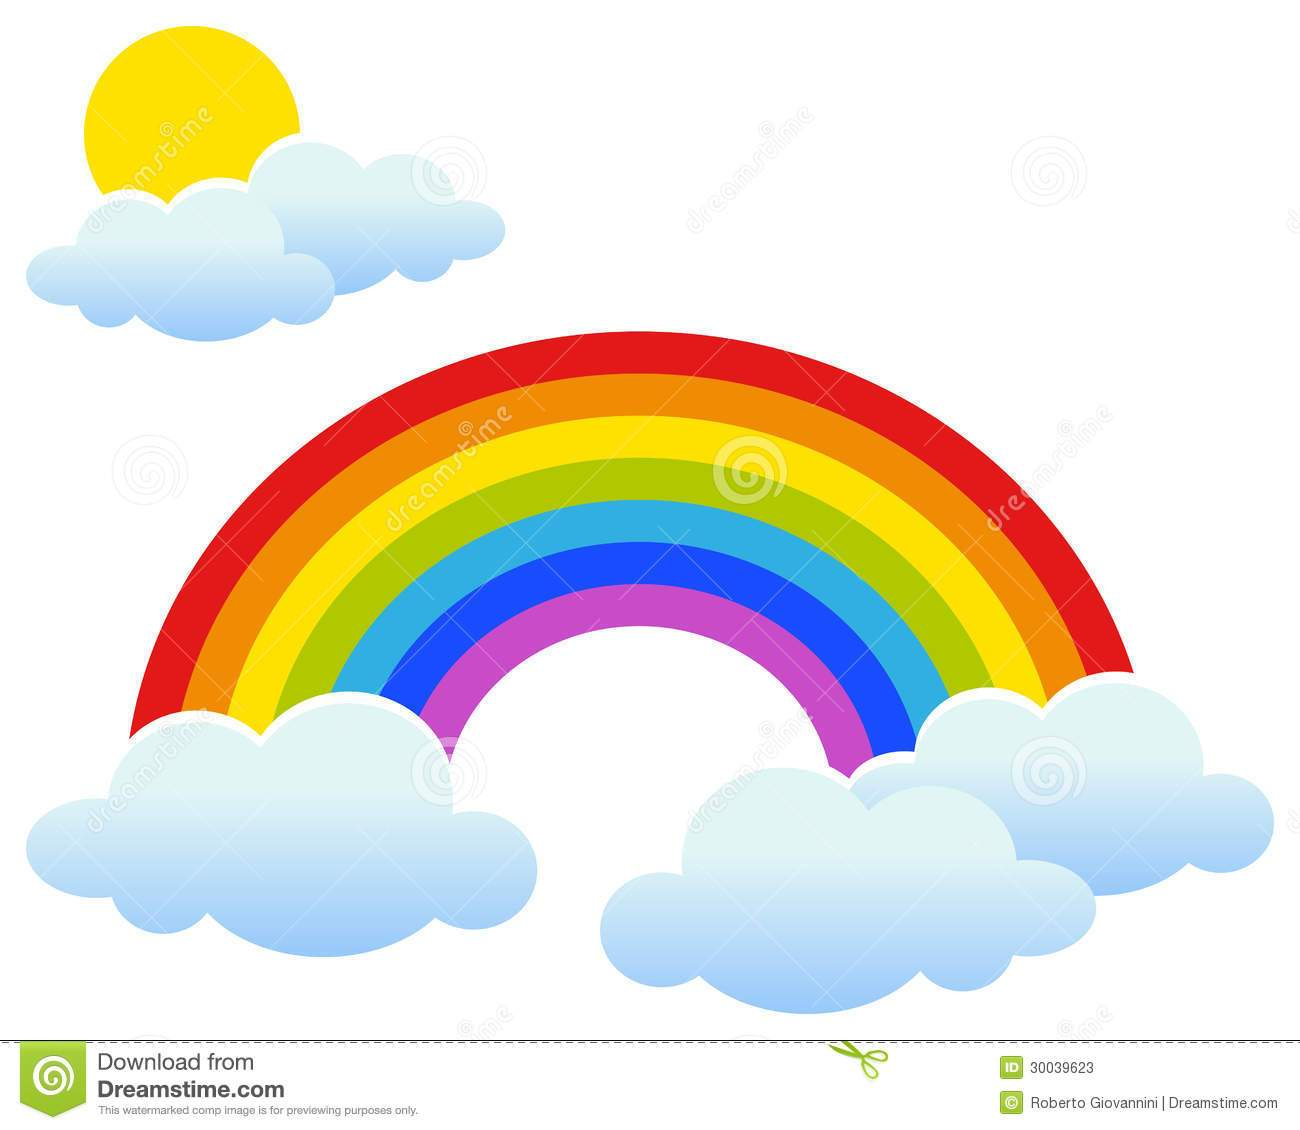 Arcobaleno clipart picture Clipart arcobaleno 6 » Clipart Portal picture